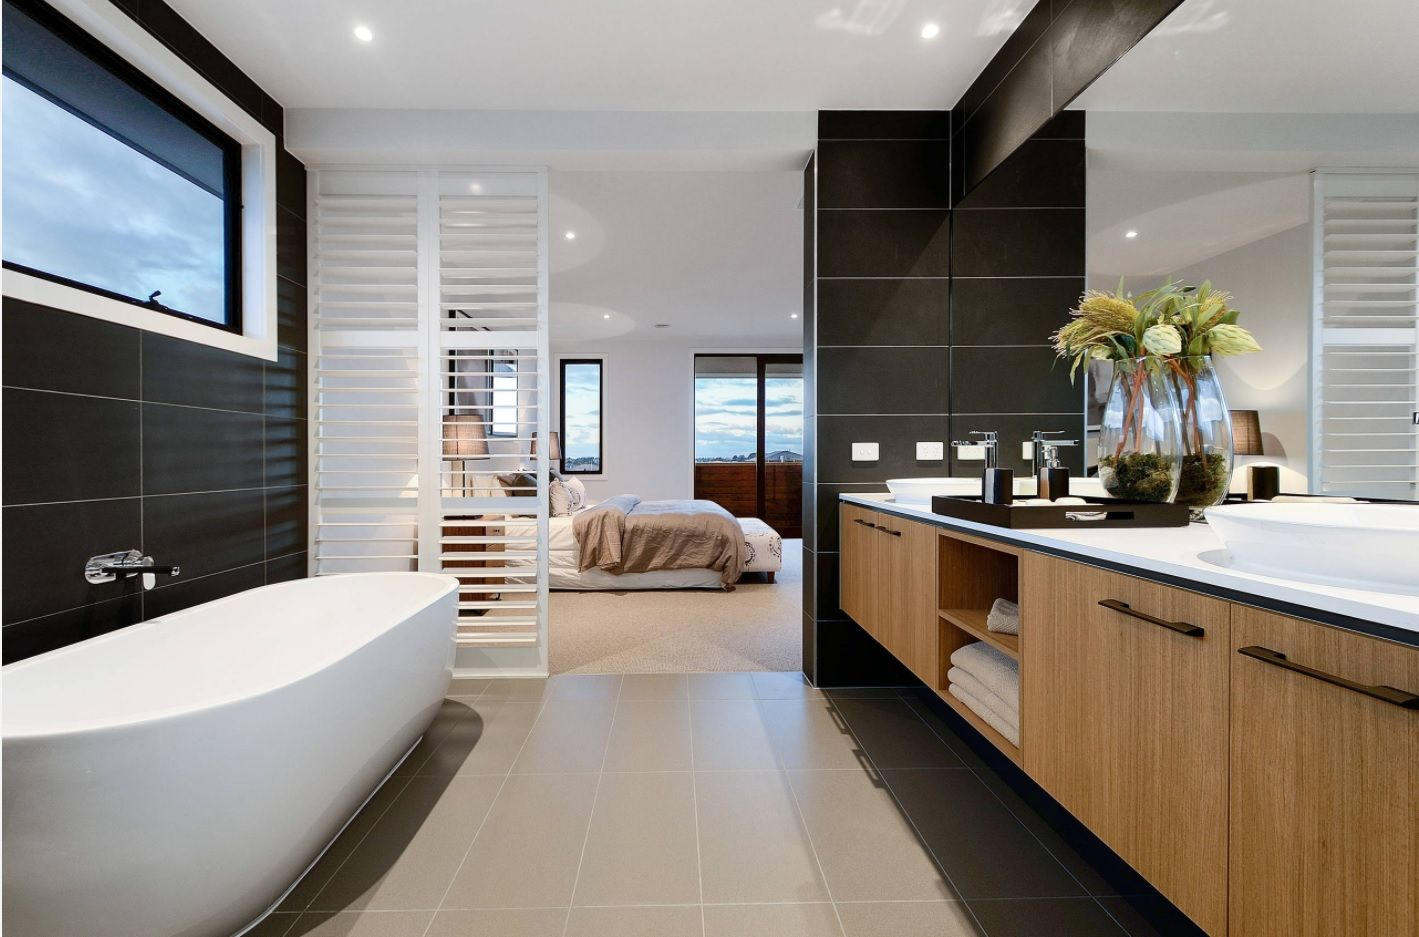 Hi-tech in the bathroom with black accents, wooden vanity and white oval bathtub